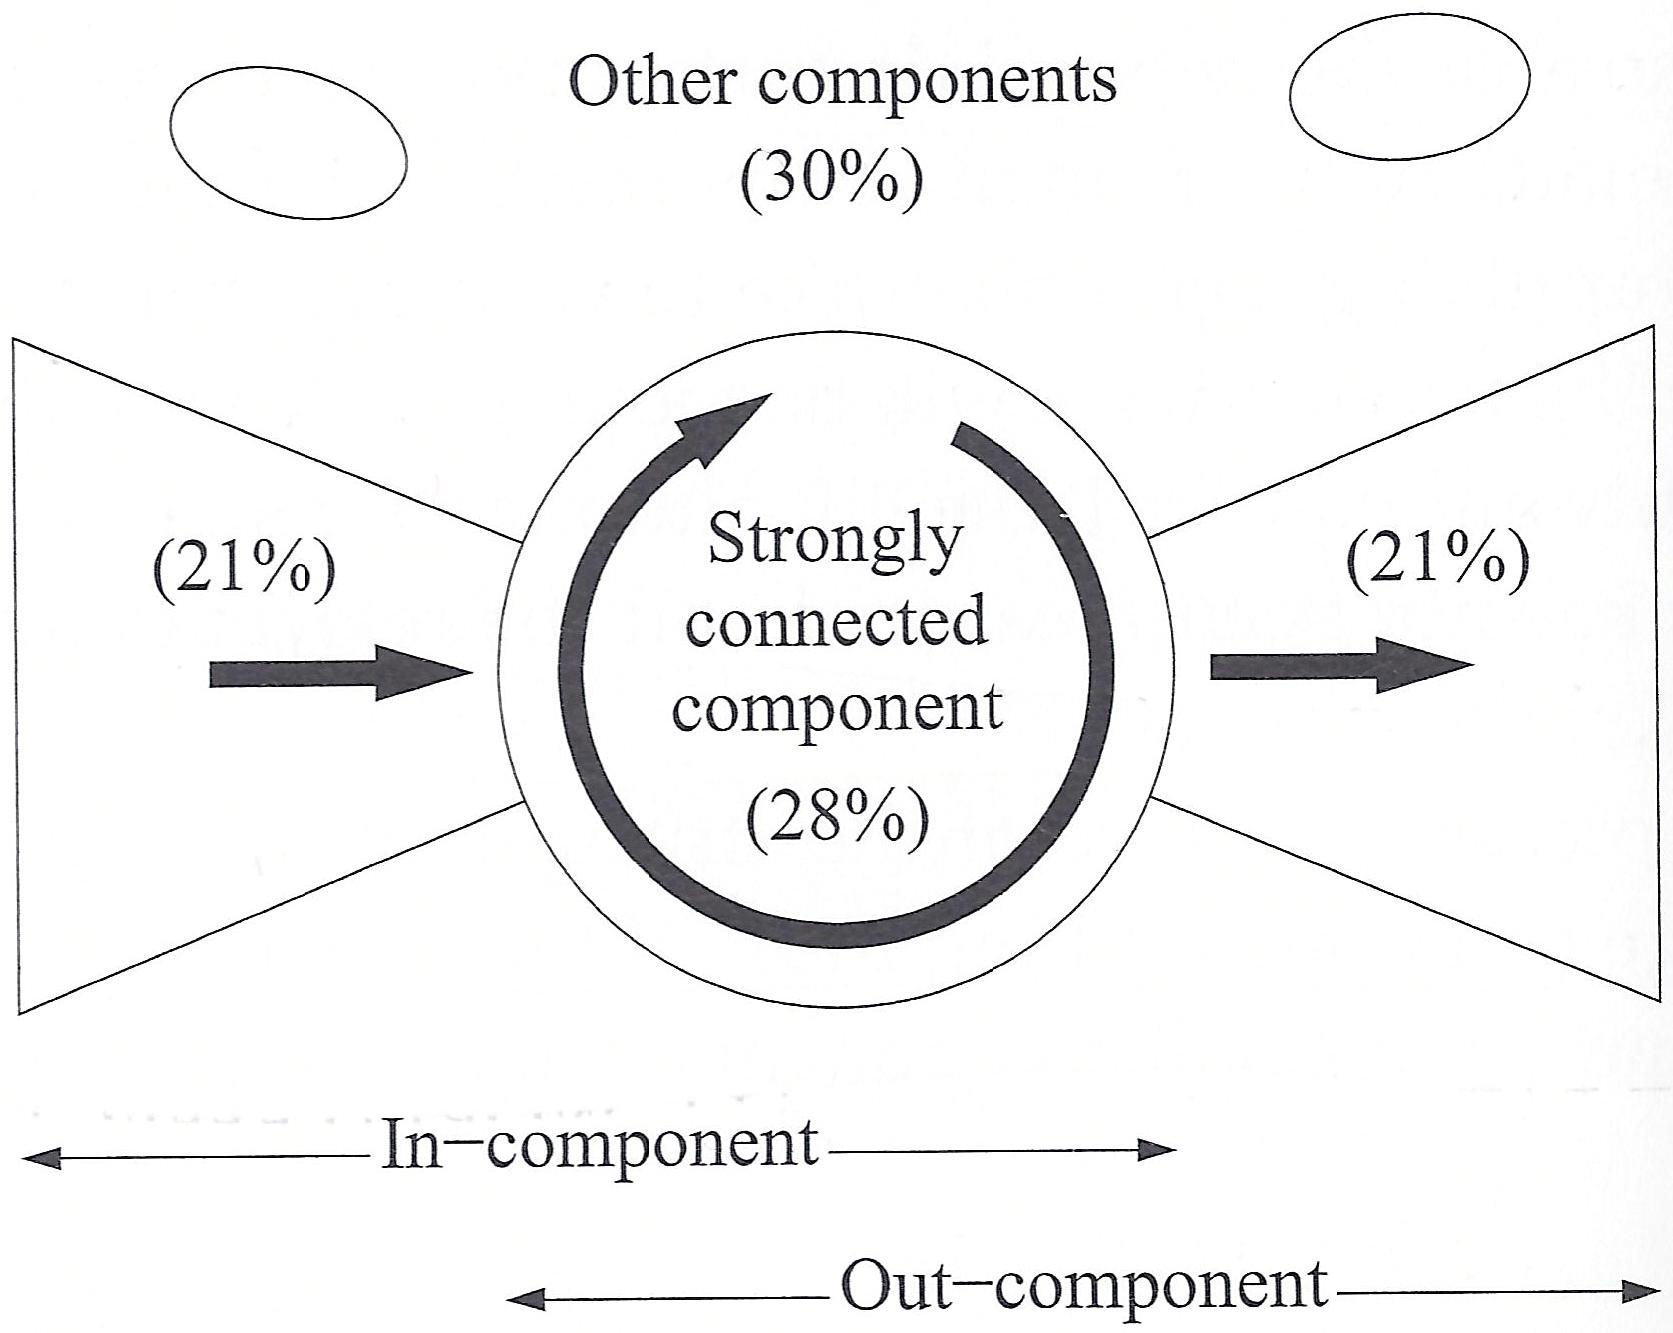 Beaufiful How To Tie A Diagram Images 5 Bow Tying File Of Components In Directed Network